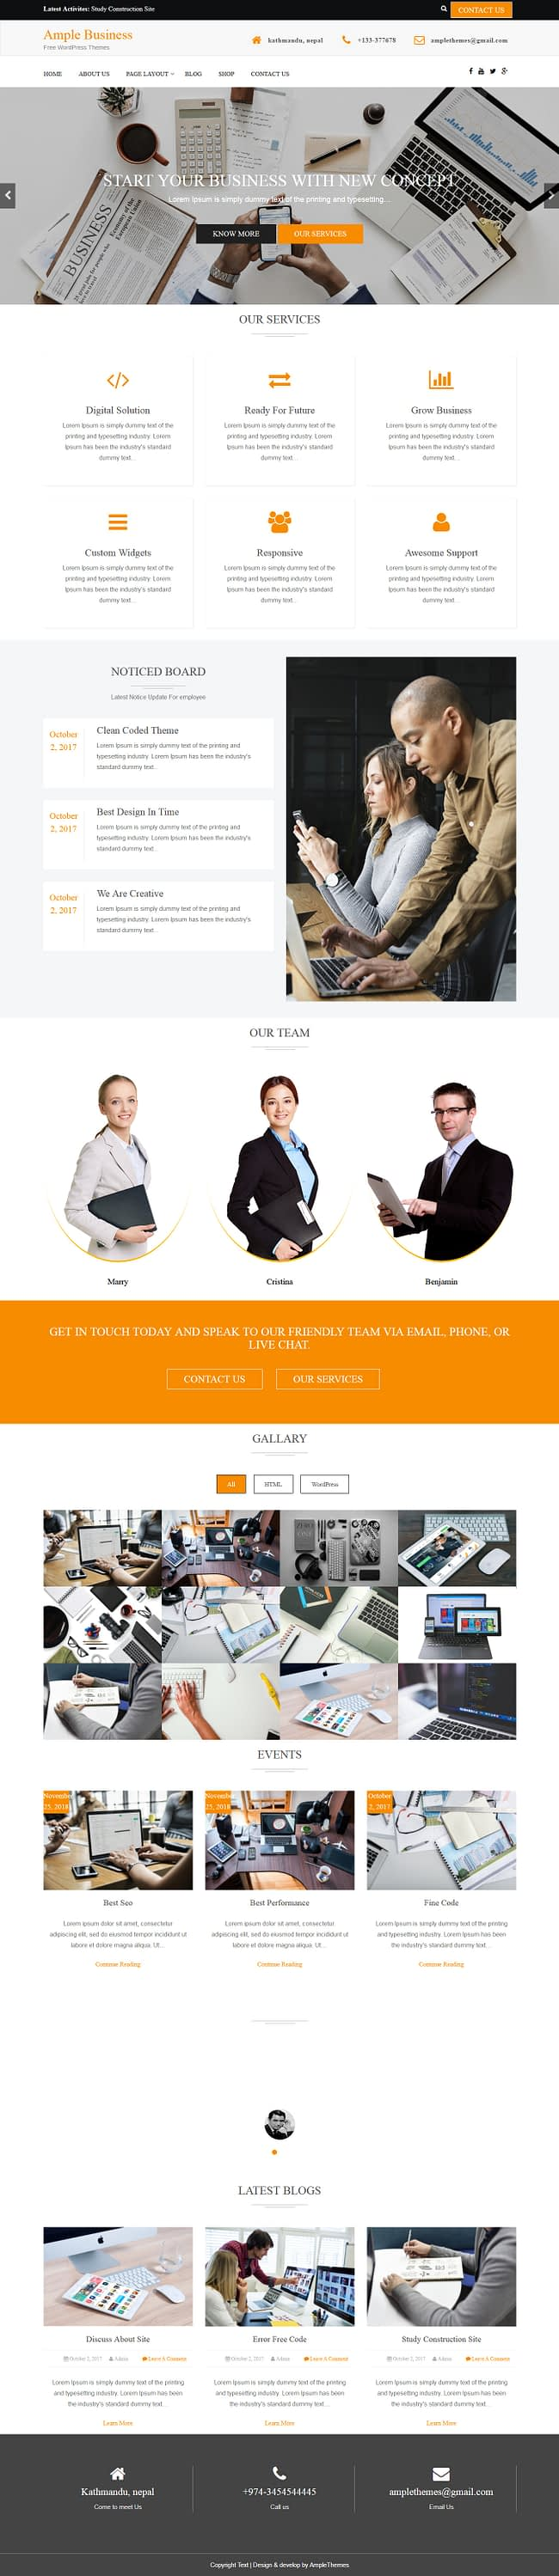 ample business best free accounting wordpress theme - 10+ Best Free Accounting WordPress Themes